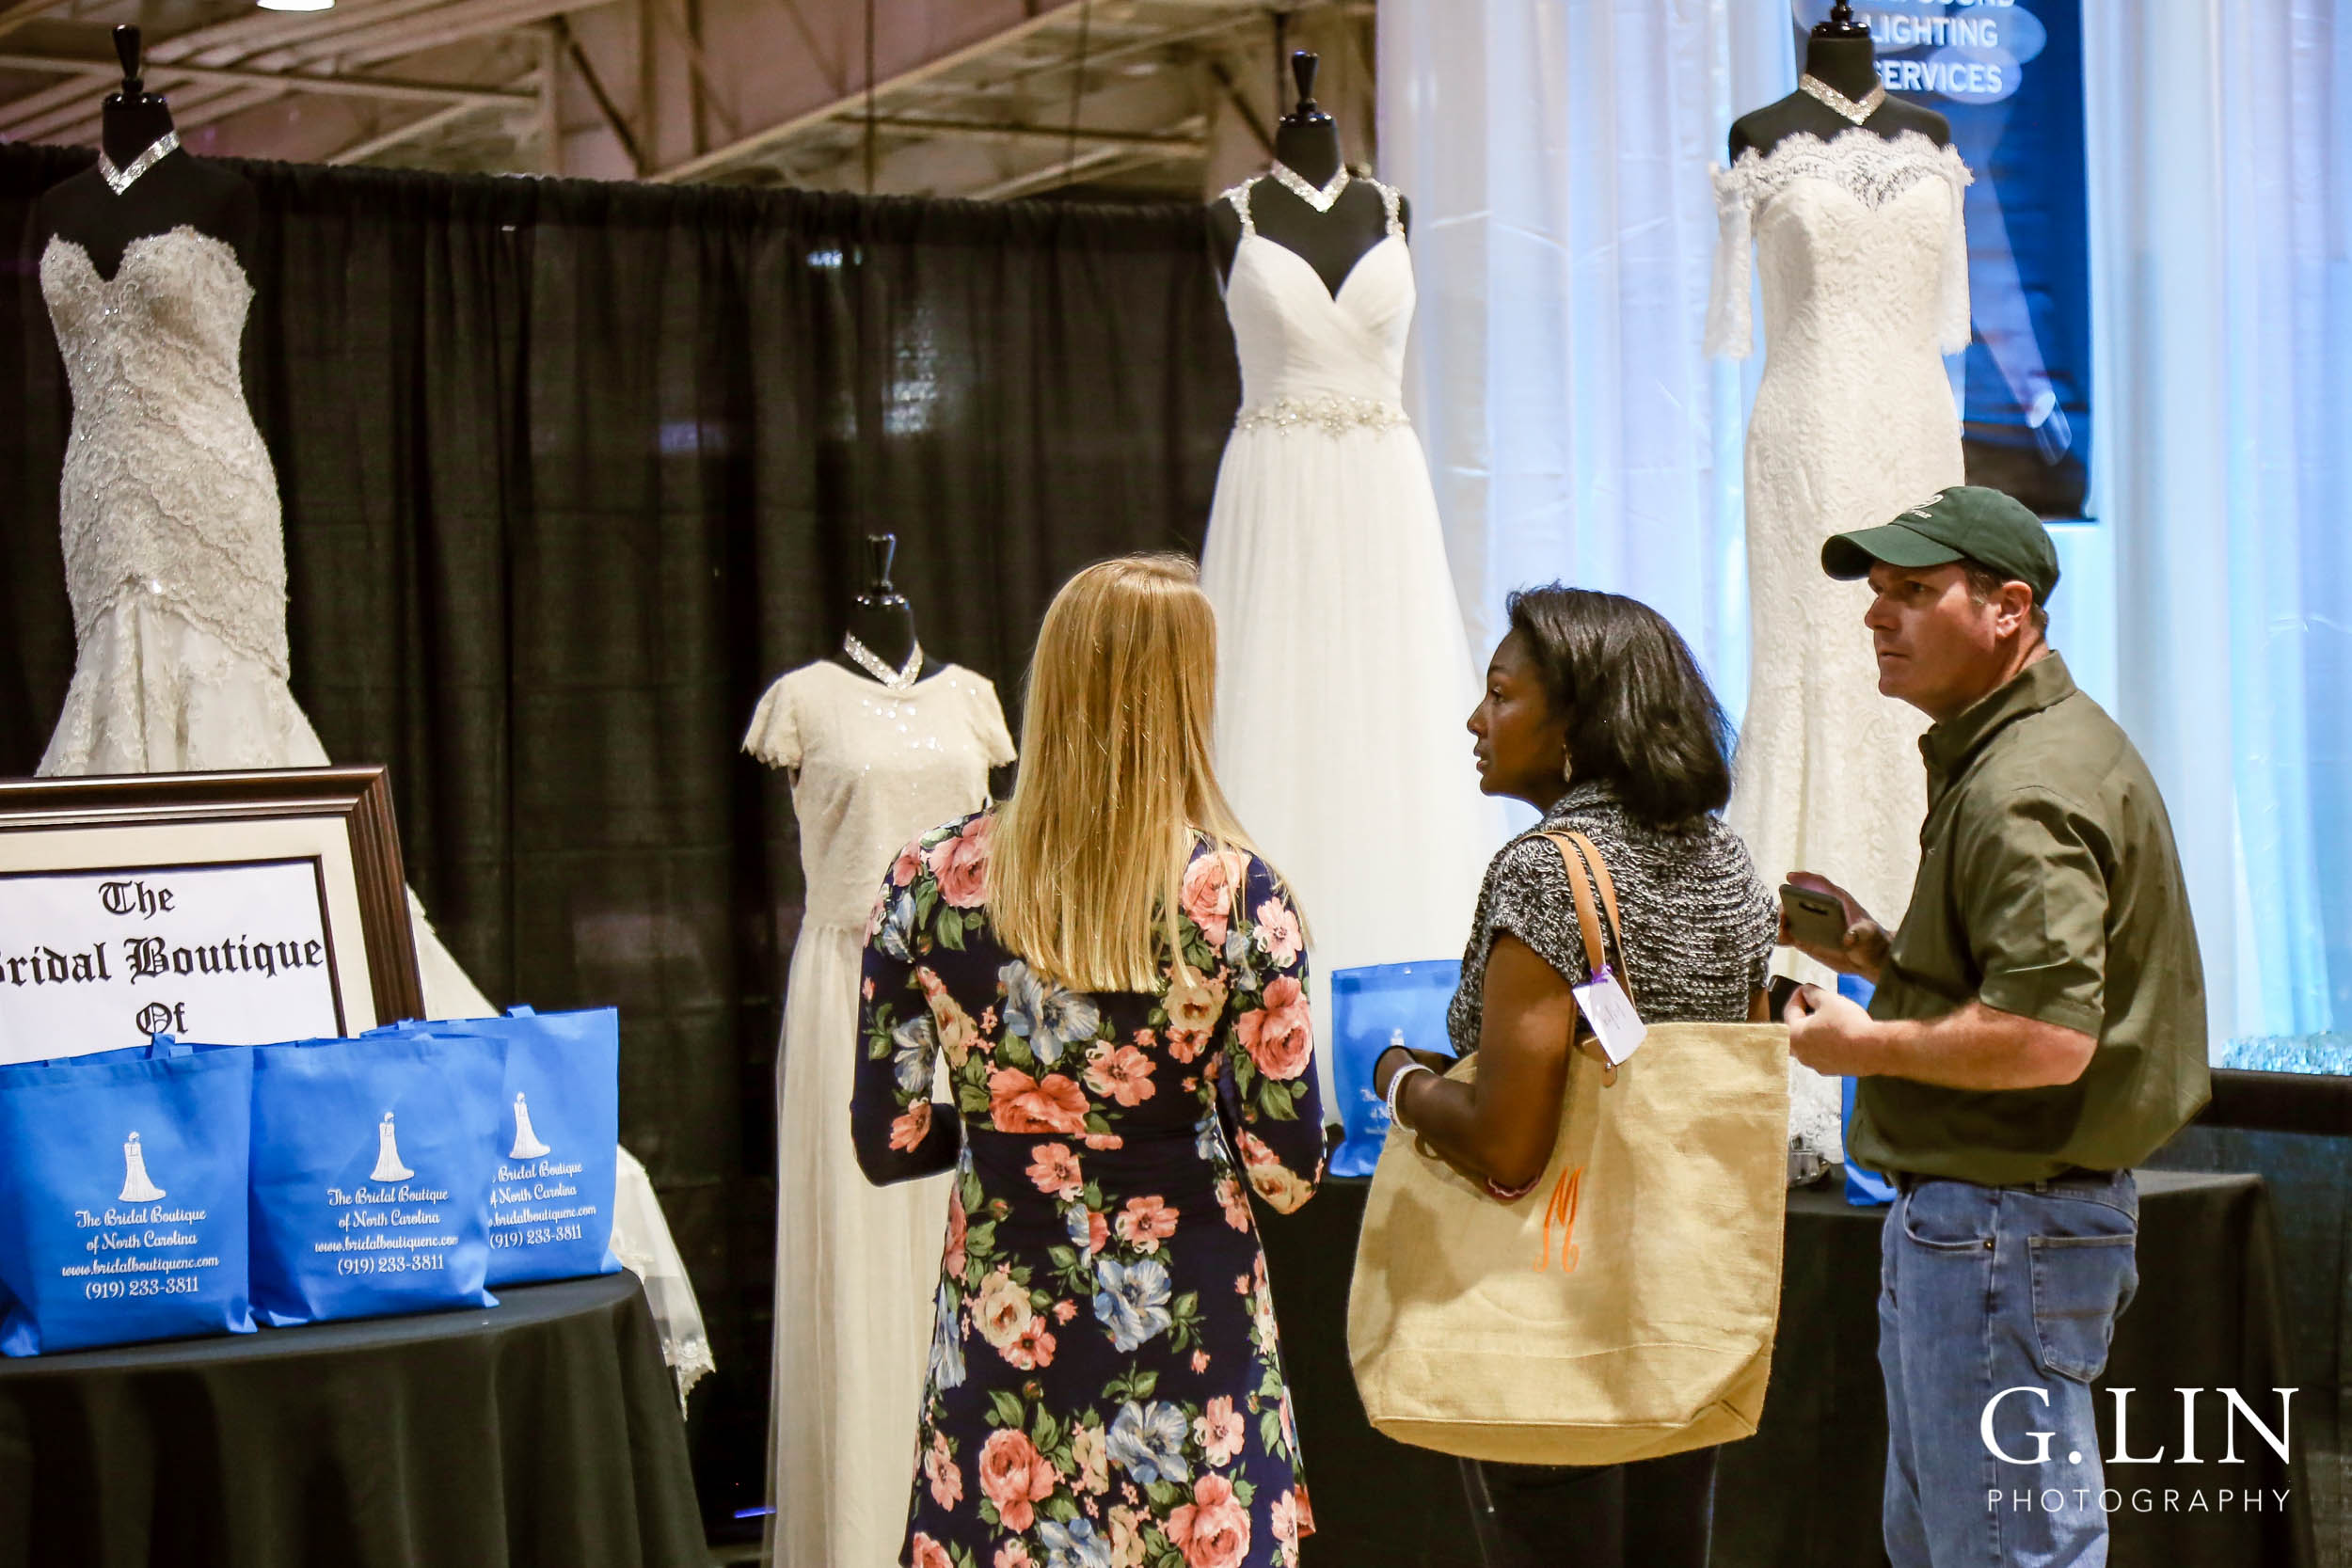 Raleigh Event Photographer | G. Lin Photography | Vendor helping bride and groom with wedding gowns